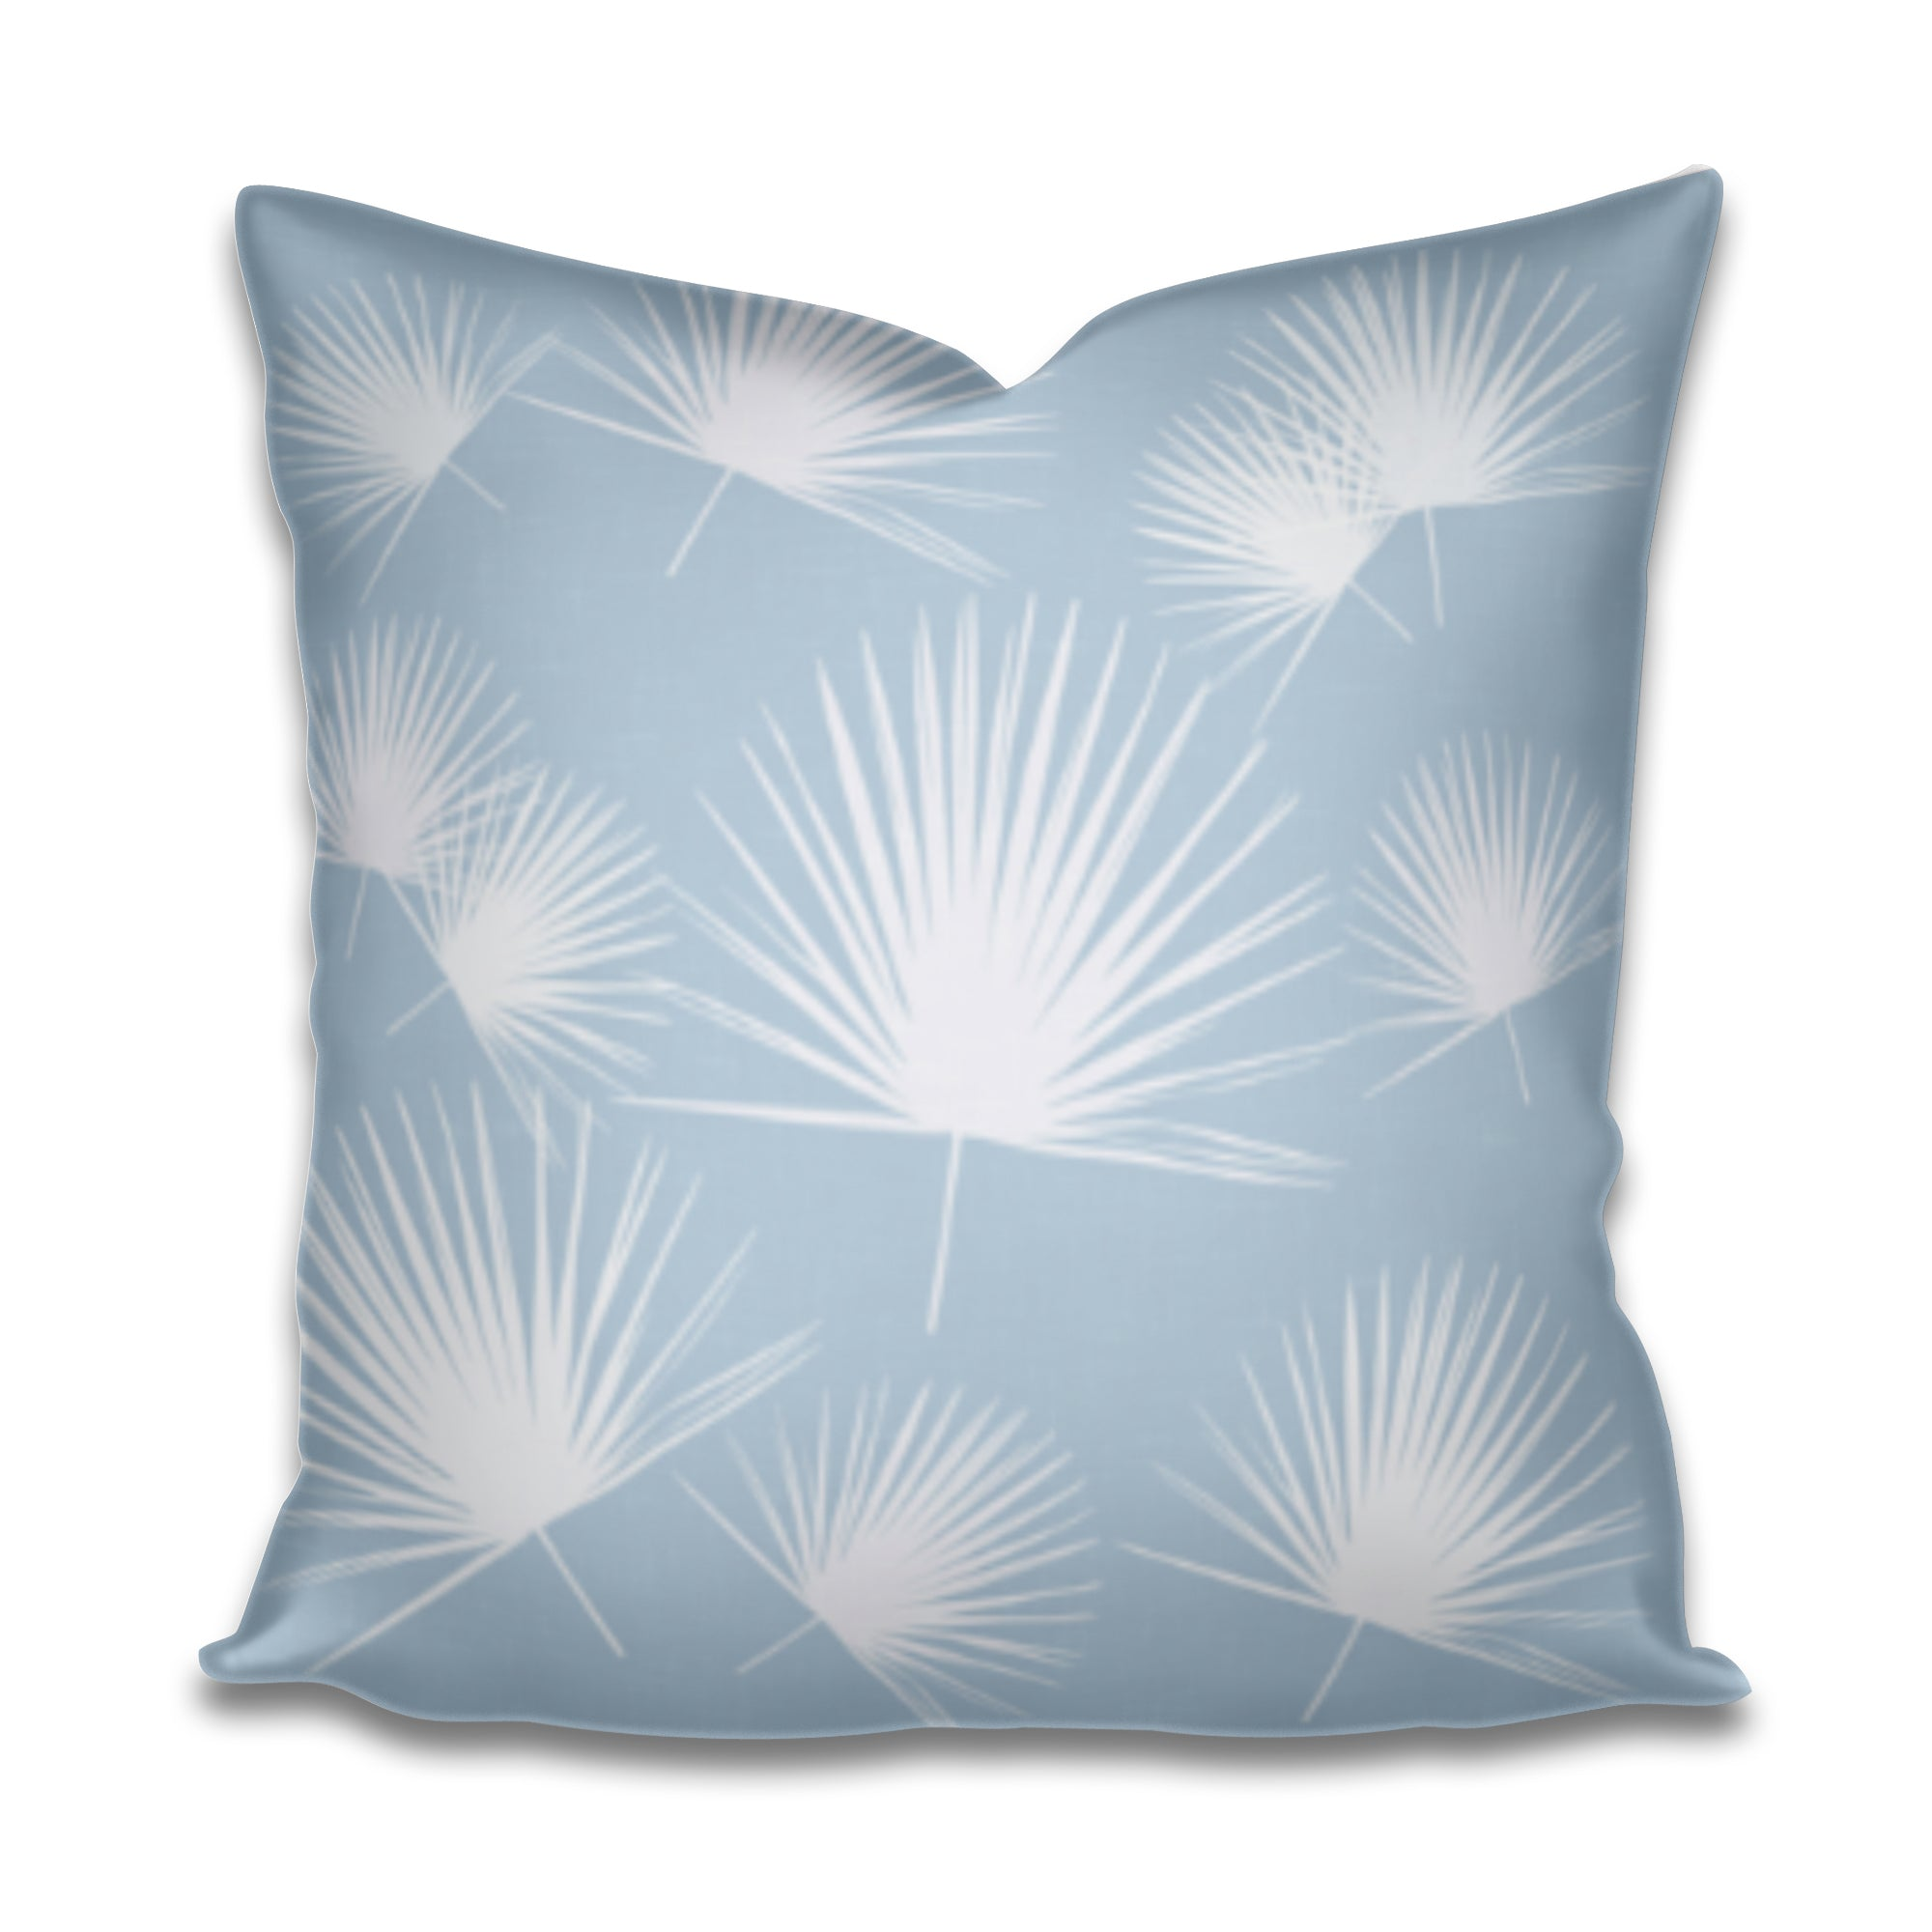 palmetto fan fabric, palmetto pillow, palmetto palm pillow, blue palmetto, charleston palmetto pillow, coastal palm pillow